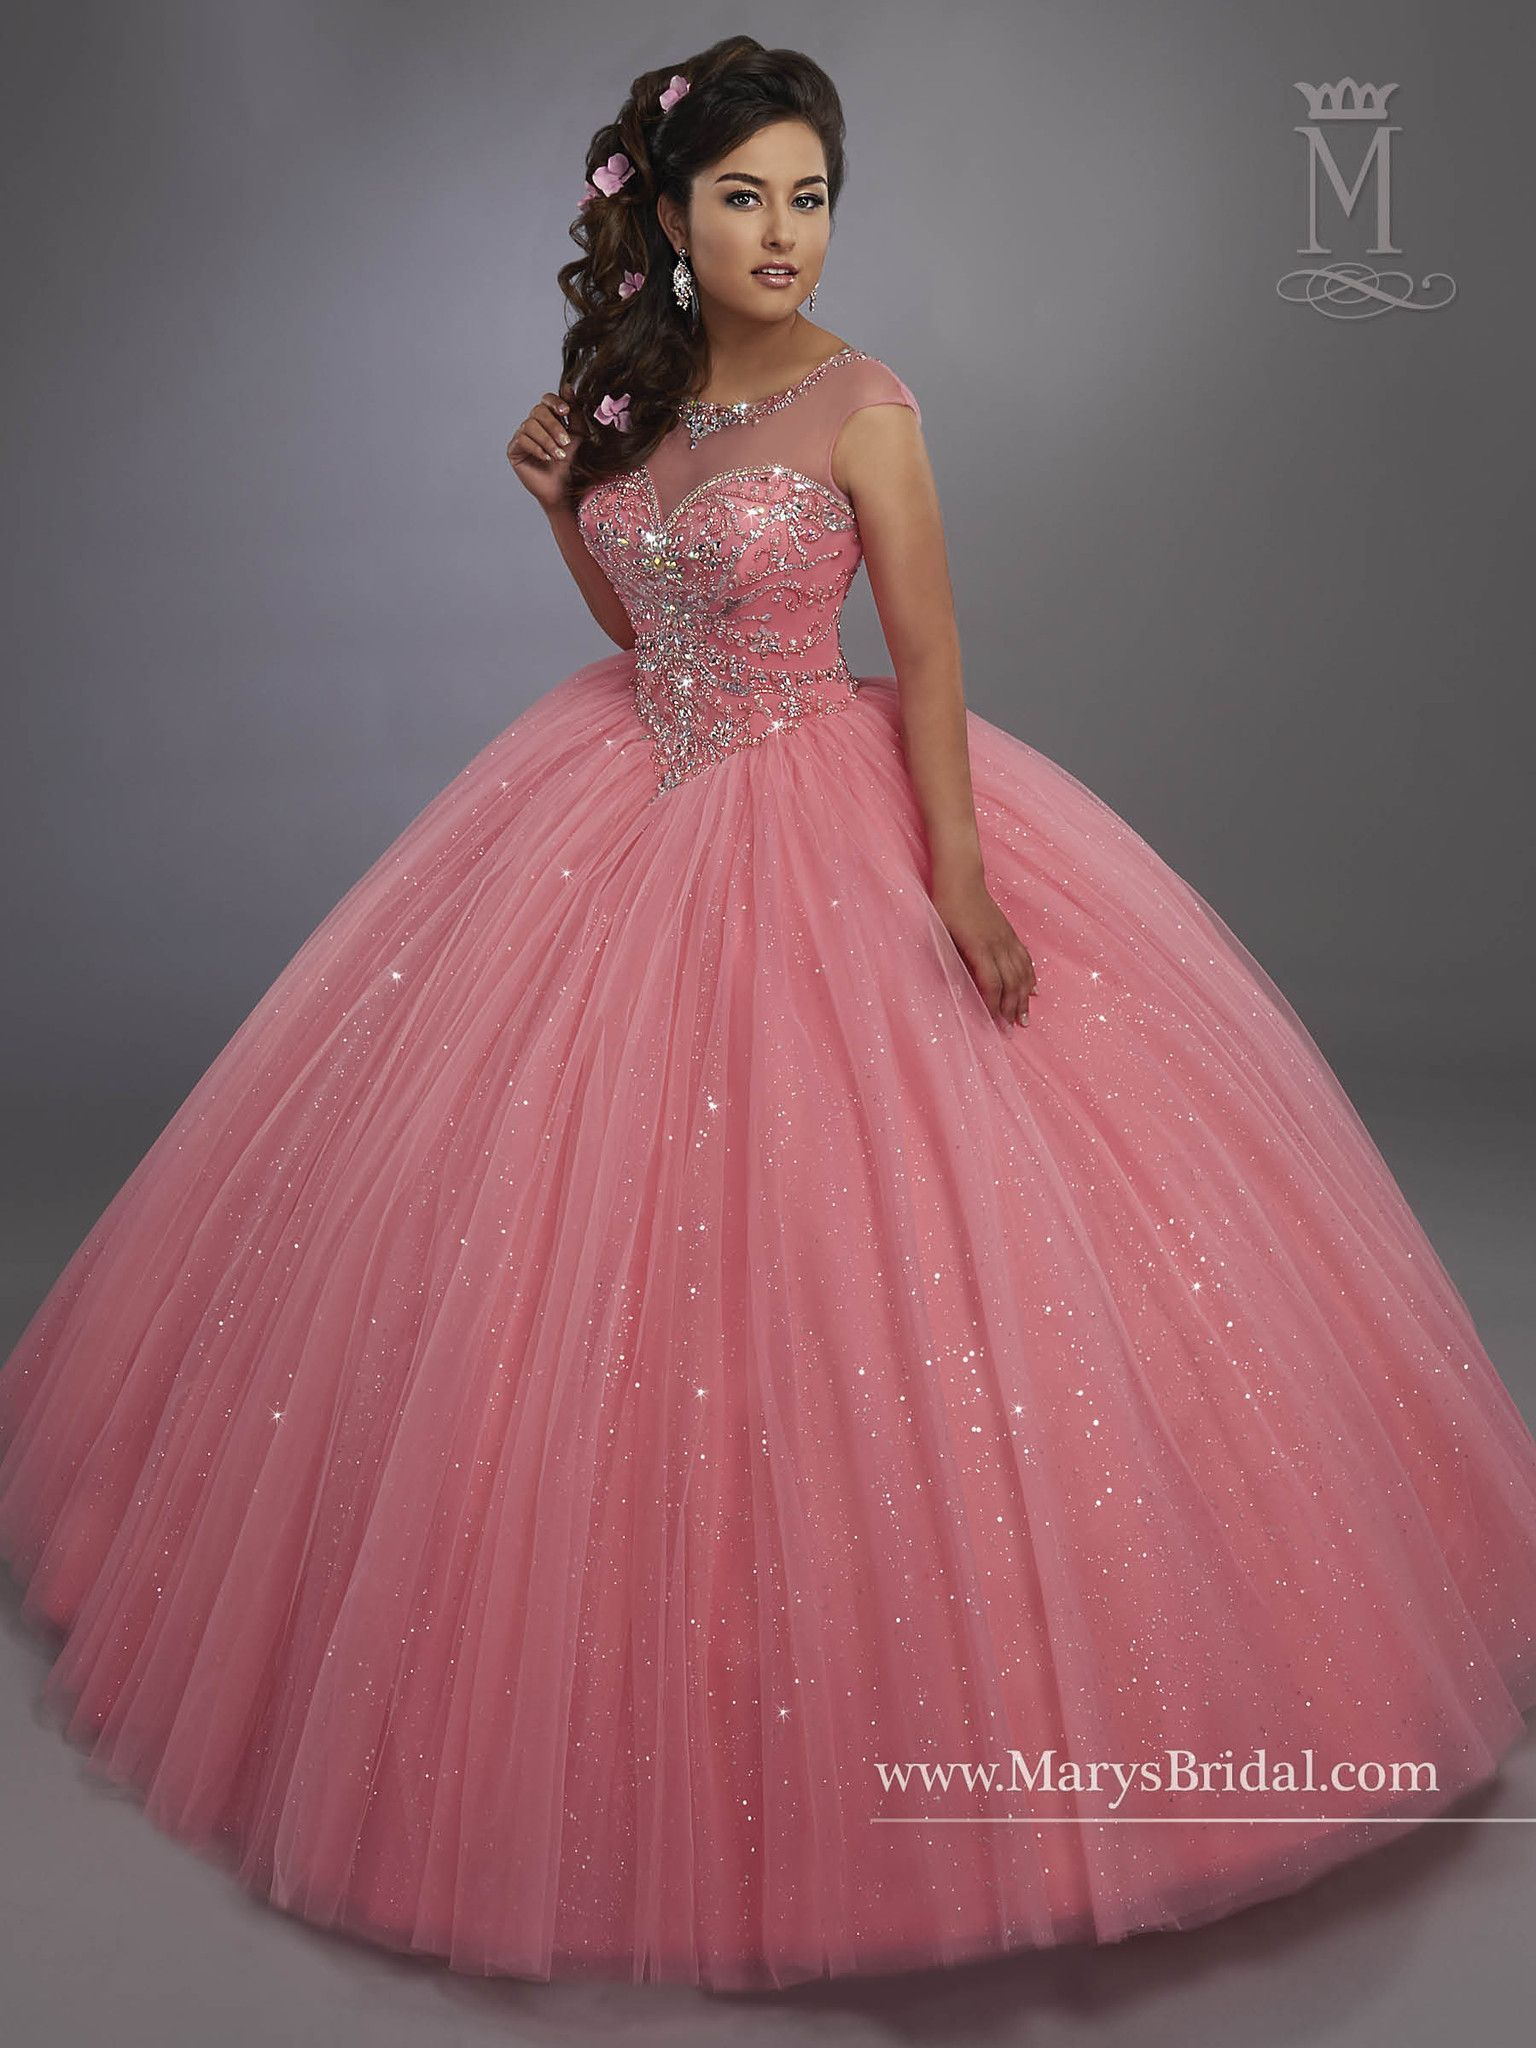 Mary\'s Bridal Beloving Collection Quinceanera Dress Style 4768 | 15 ...